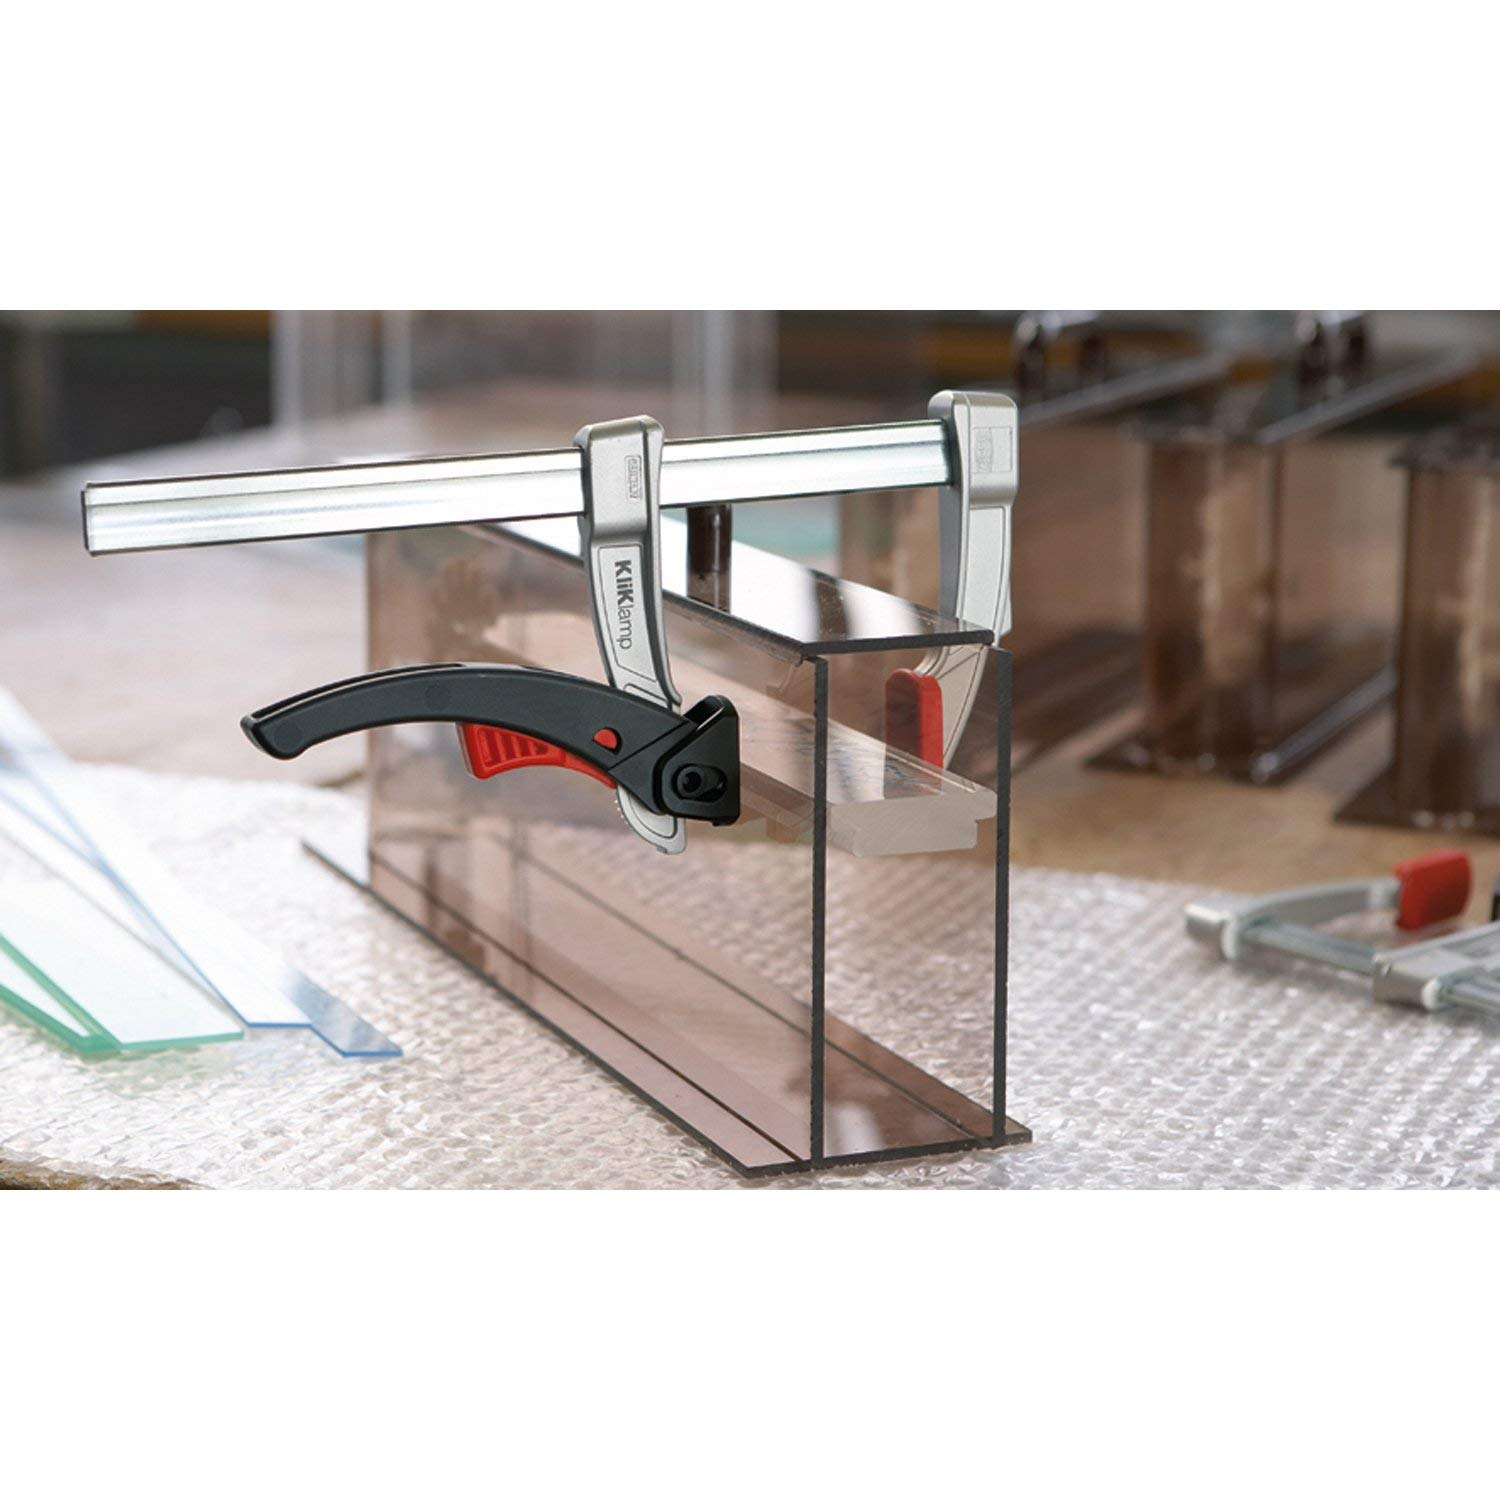 teilig Bessey KLI-S Kliklamp Systainer Set with 16 Clamps Silver